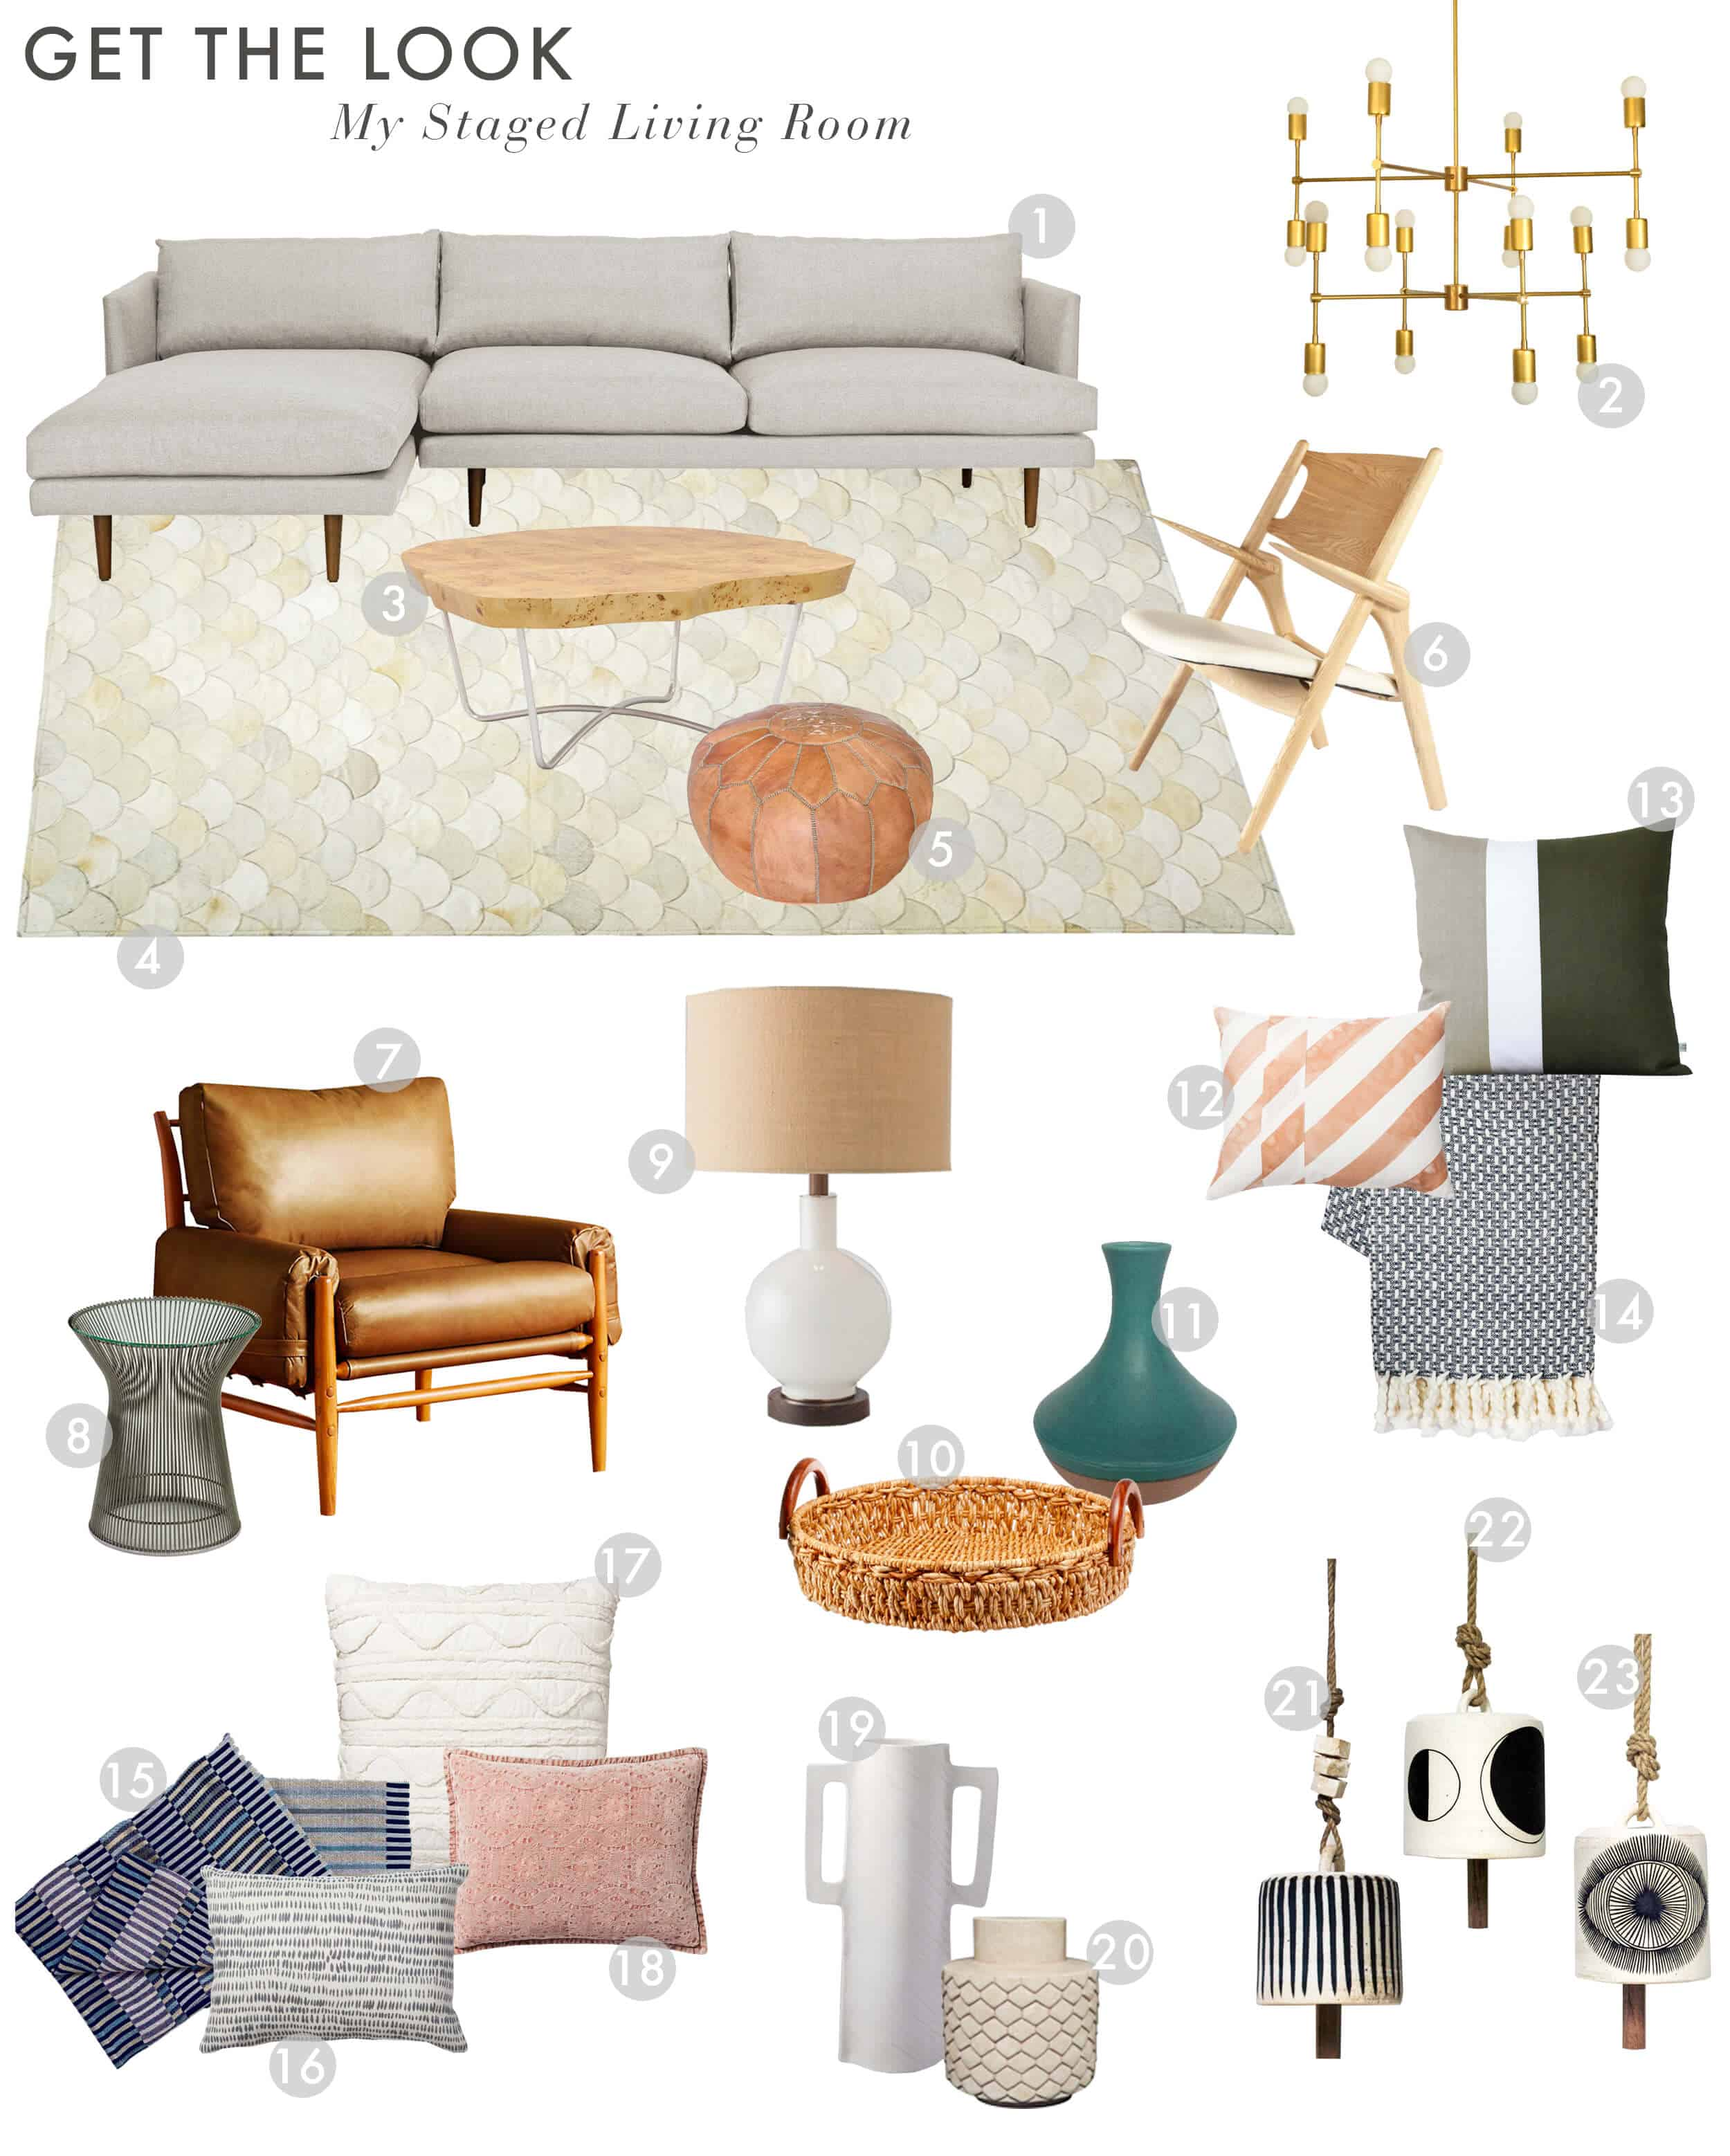 Emily Henderson_Home_Living Room_Staging_For Sale_Curbed_Get the Look_With Numbers